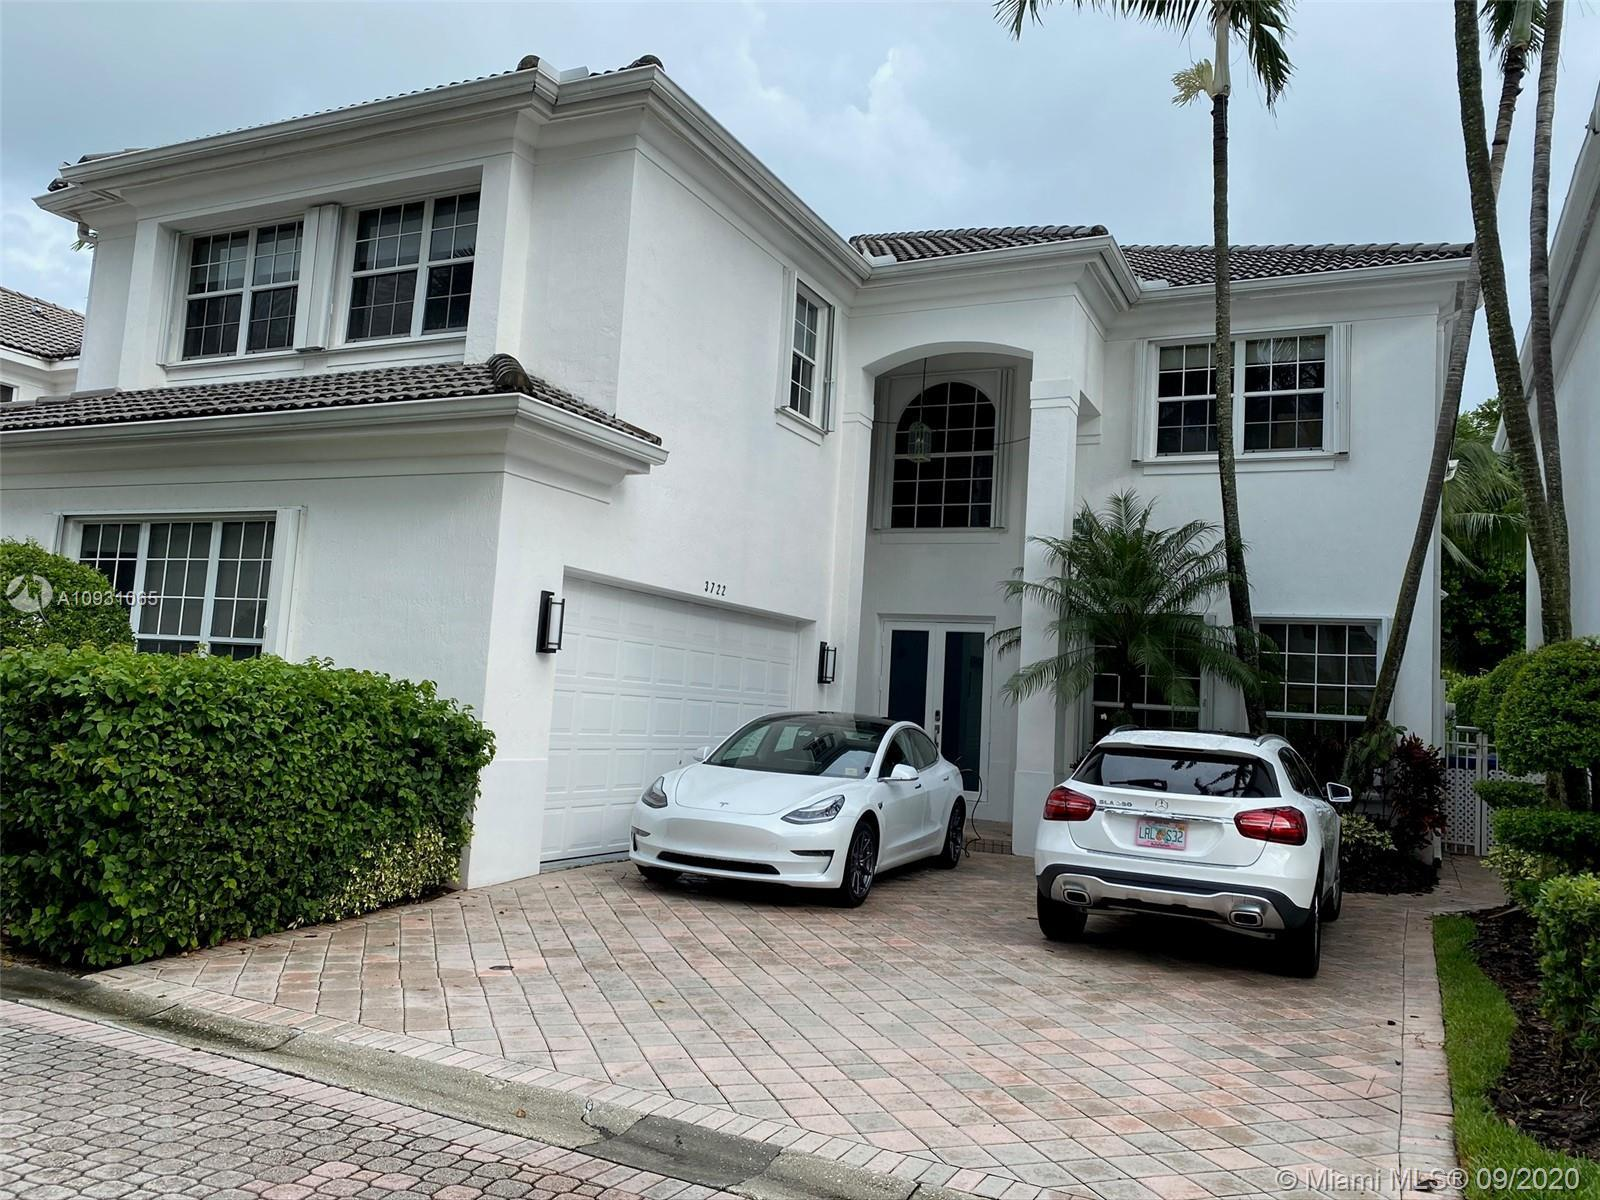 Enjoy living in the most Exclusive Gated Community in Aventura. This modern, spacious home offers al